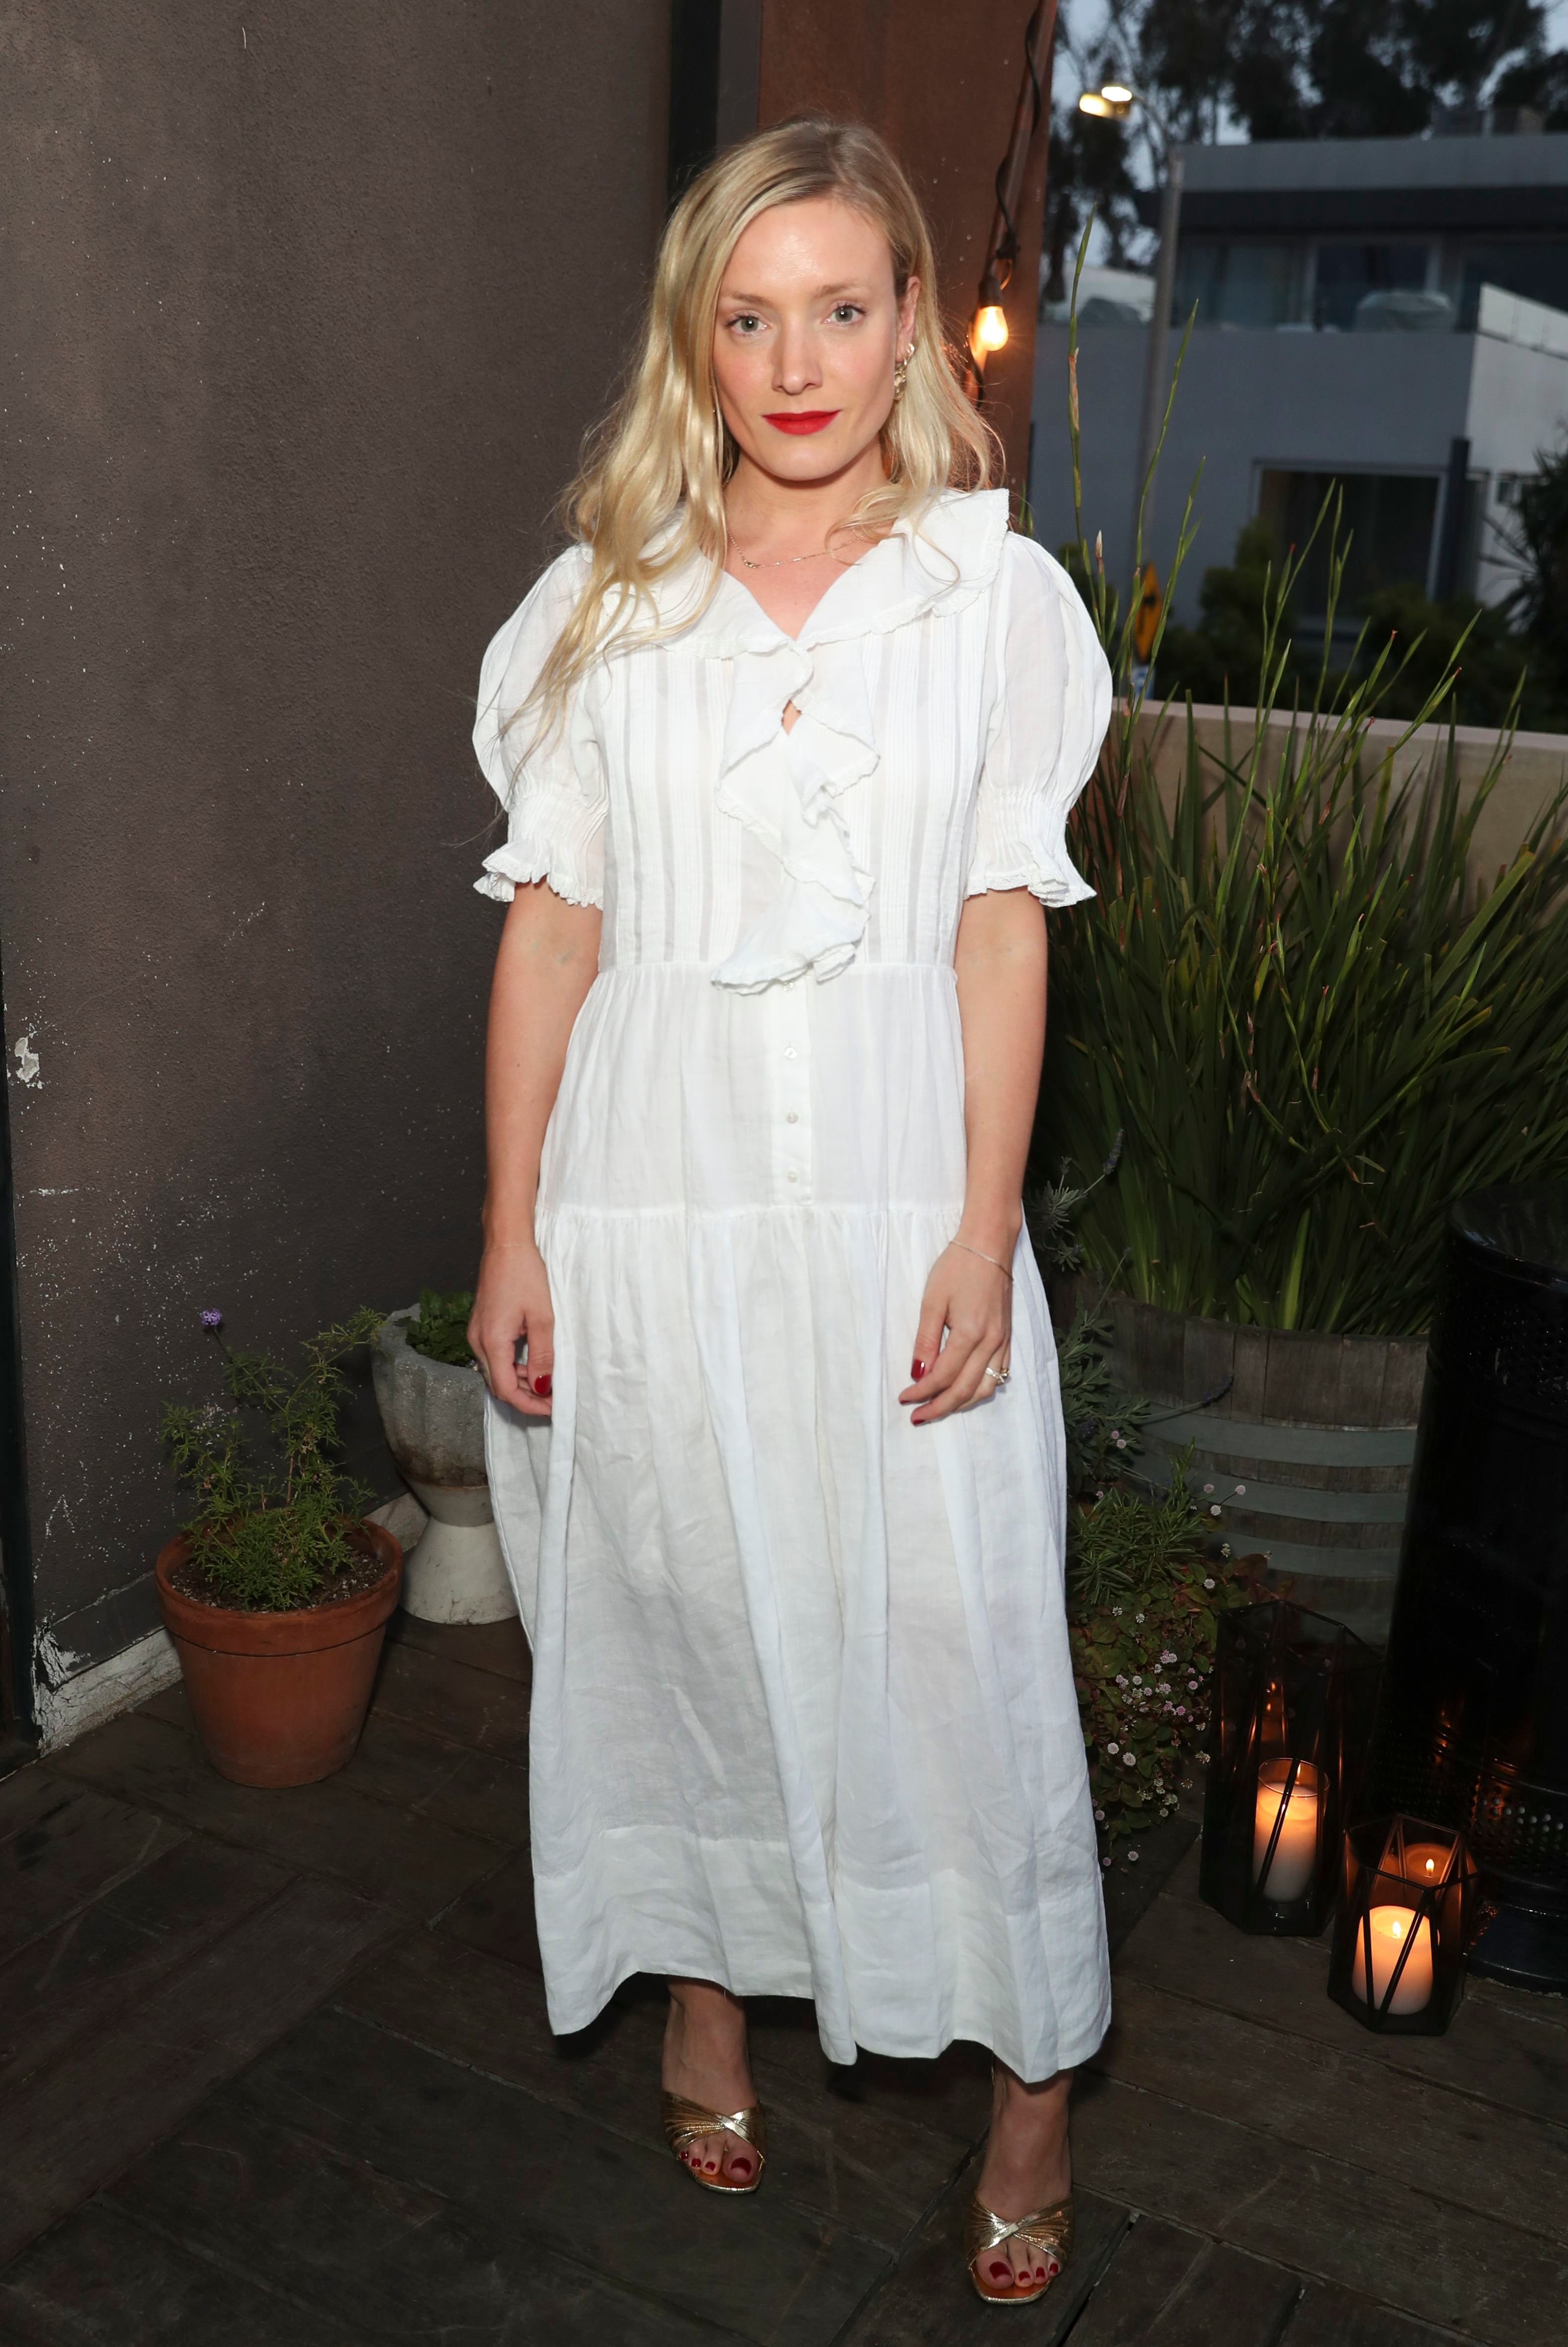 Kate Foley OsterweisNET-A-PORTER Doen Dinner, Gjelina, Los Angeles, USA - 29 Apr 2019